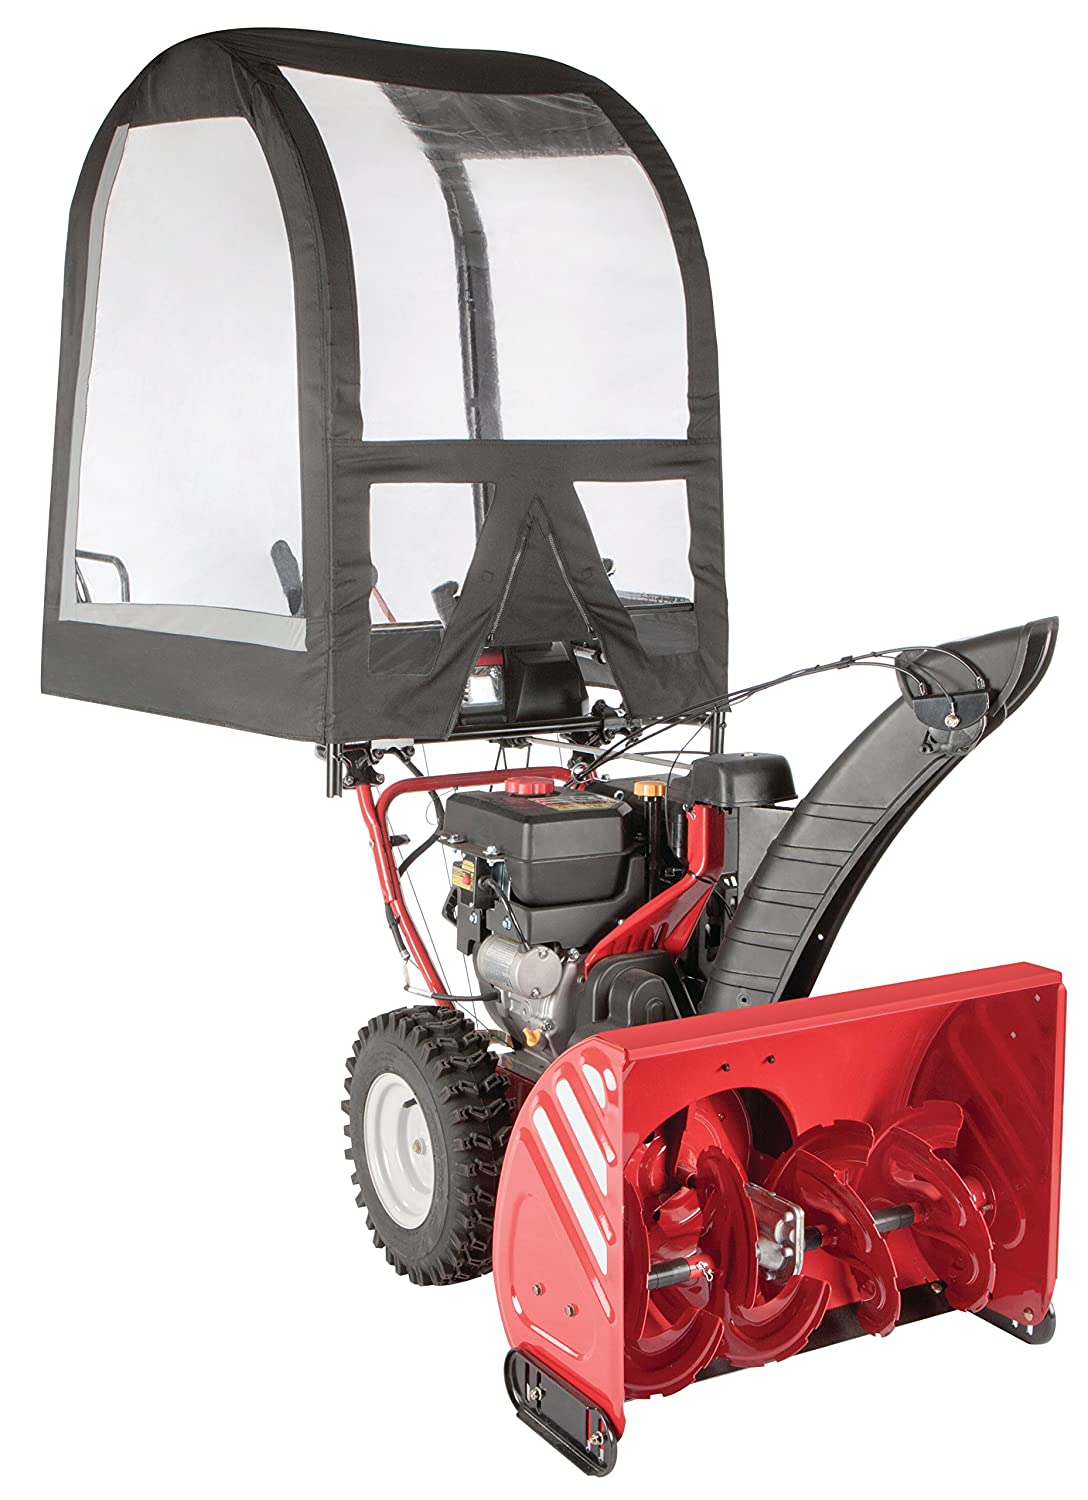 Amazon.com : Arnold Deluxe Universal Snow Thrower Cab : Snow